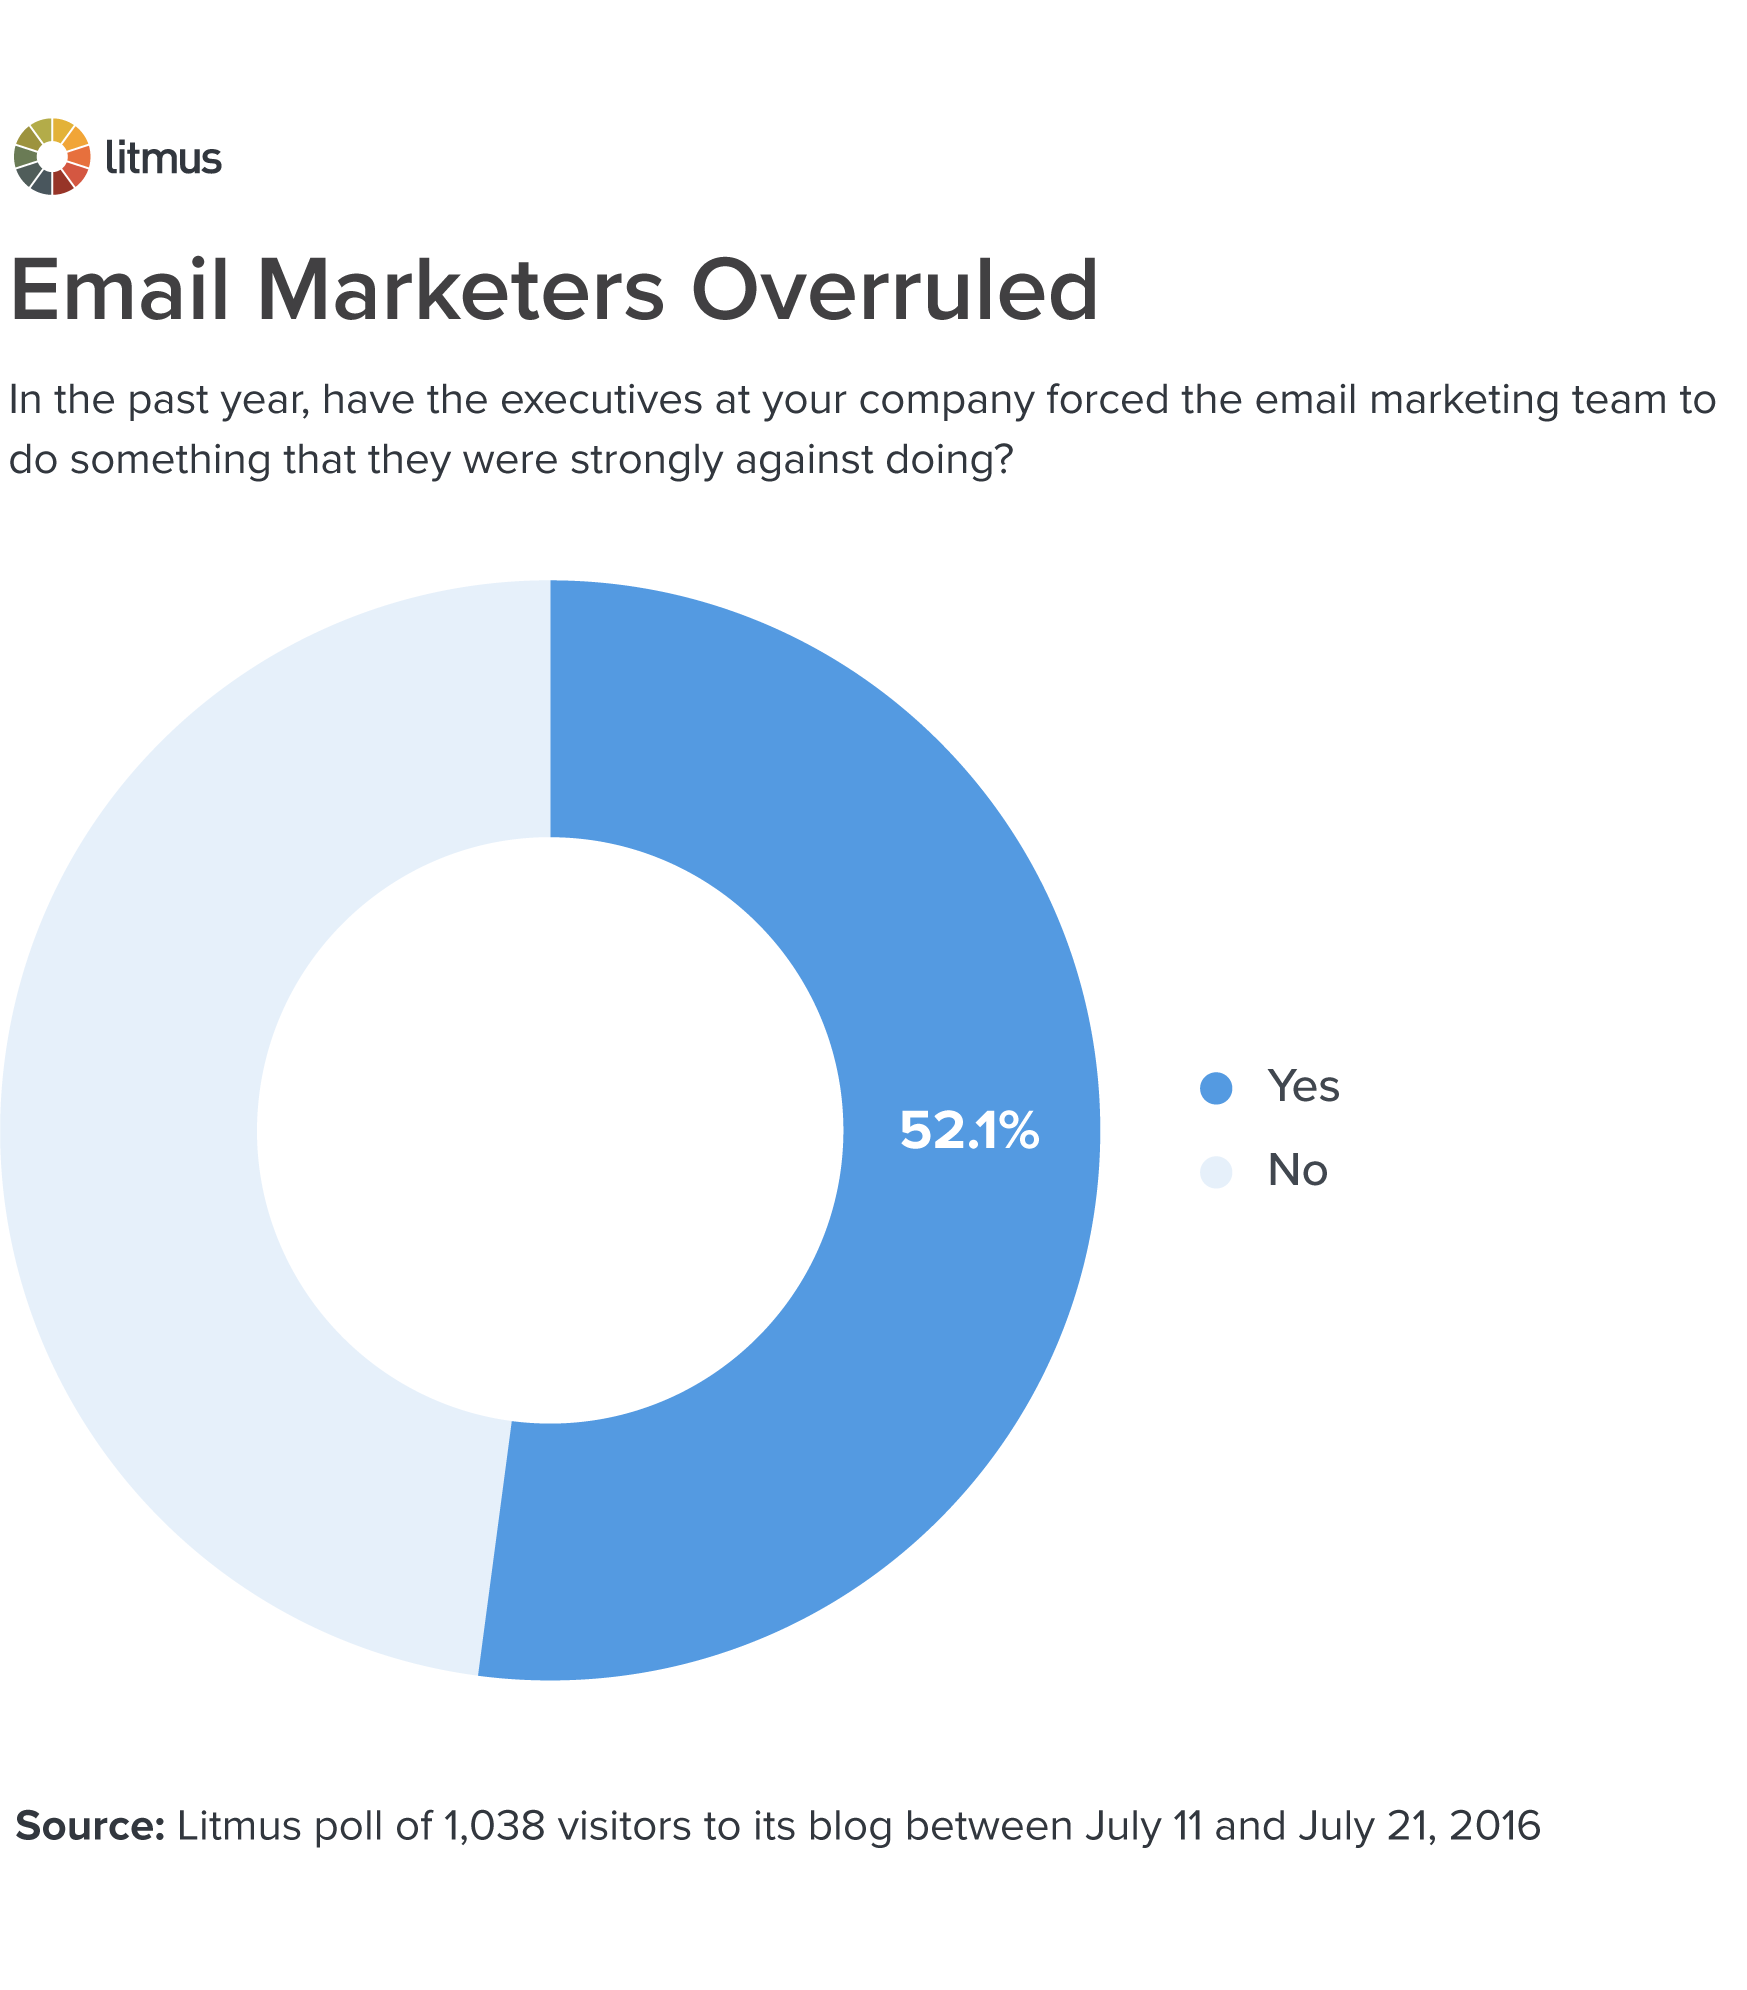 Email Marketers Overruled